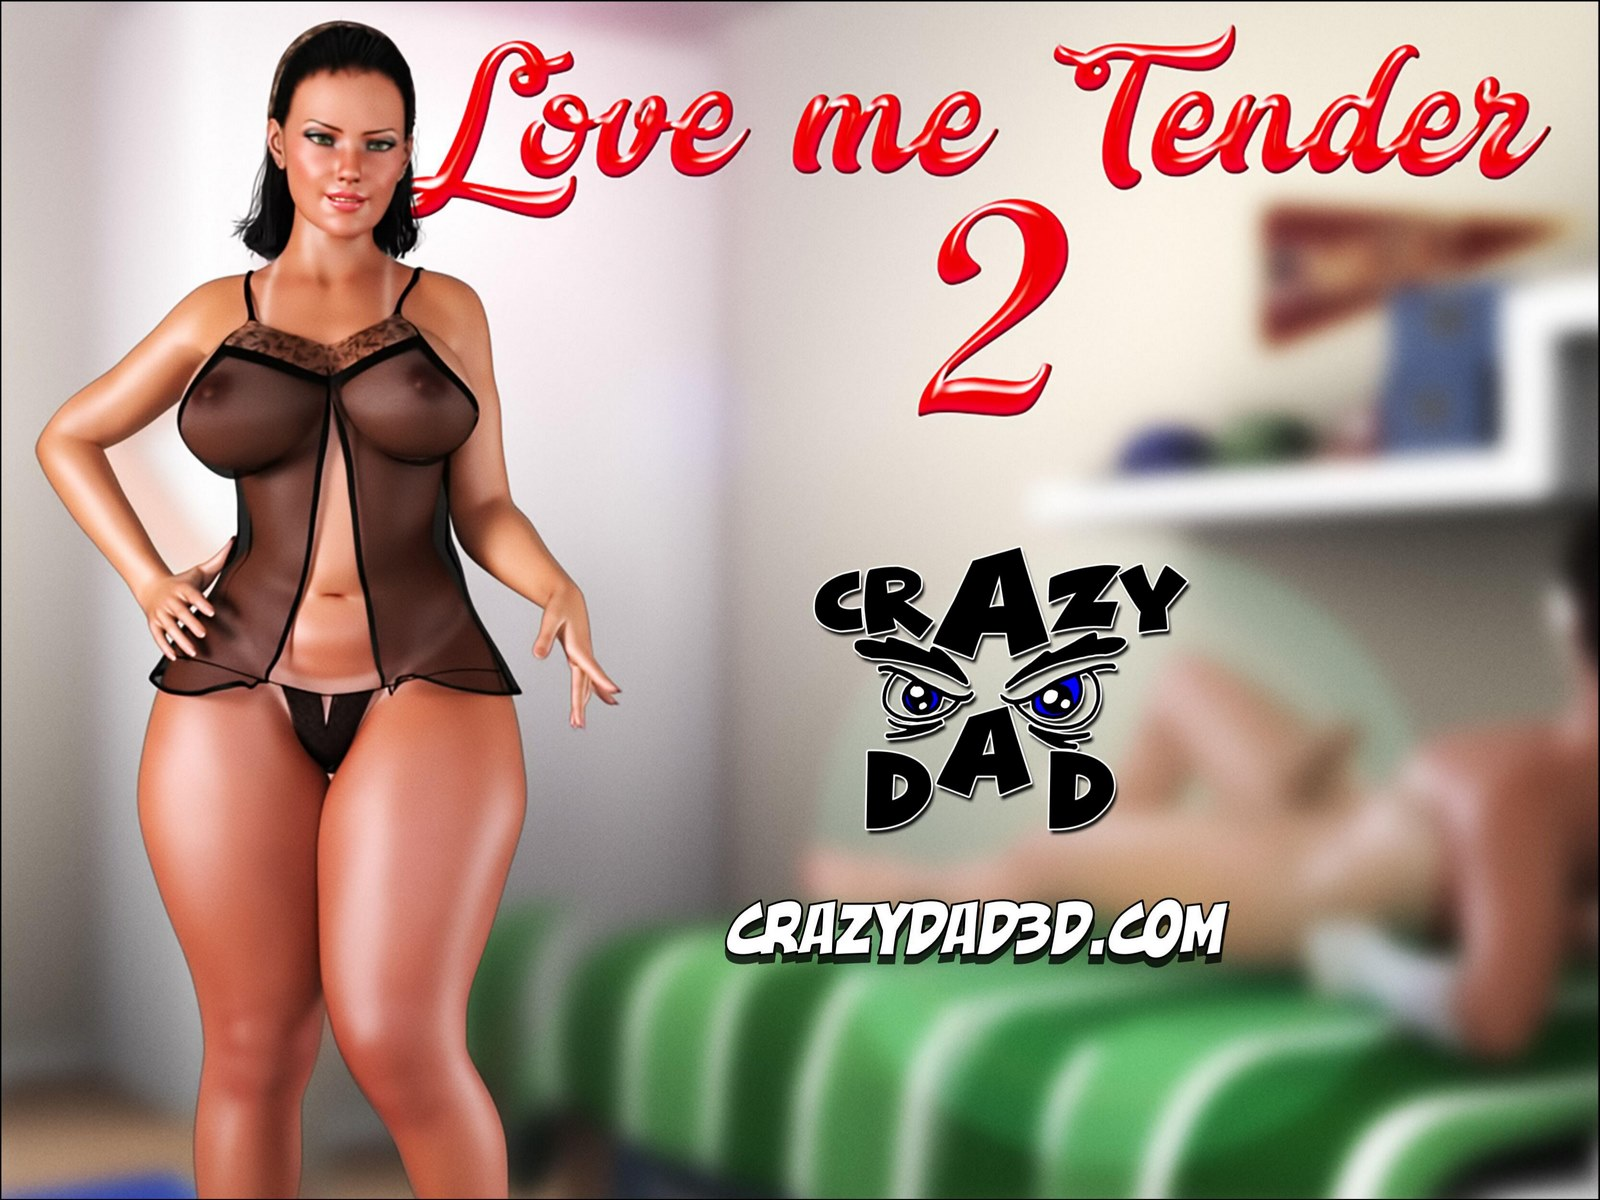 Love Me Tender Part 2 – CrazyDad3D